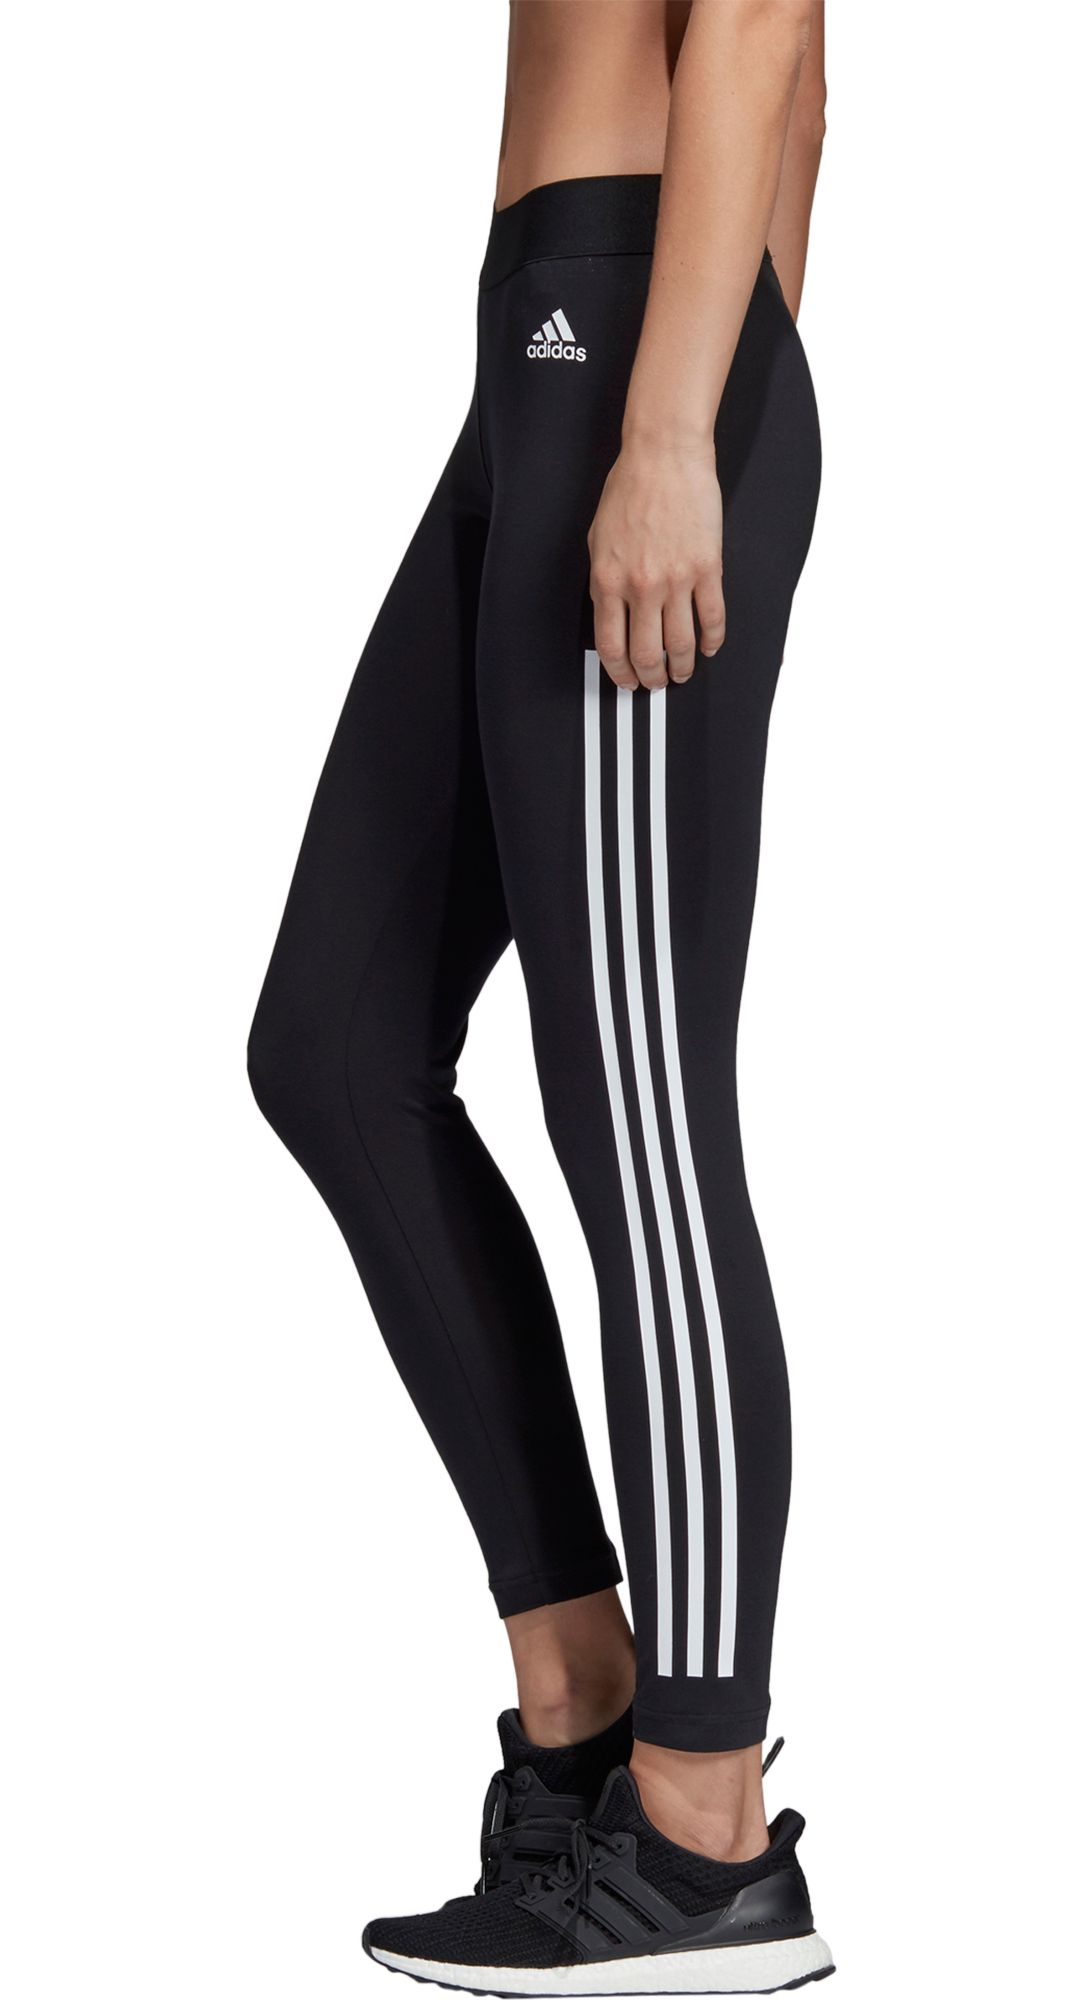 adidas Women's Must Haves 3 Stripes Tights